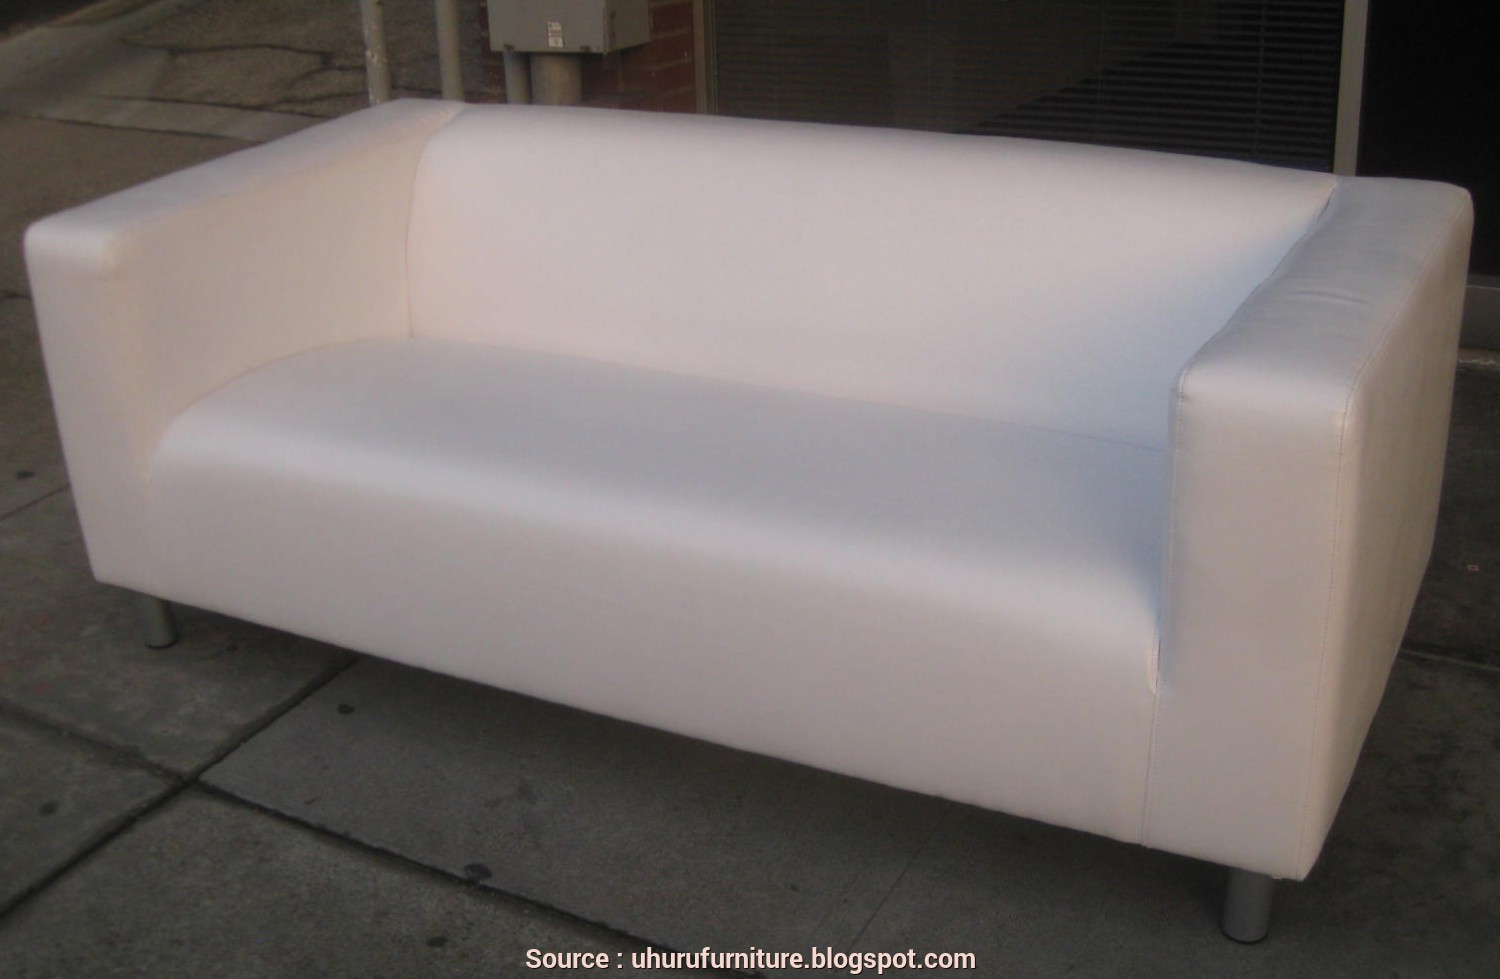 Ikea Klippan White, Stupefacente UHURU FURNITURE & COLLECTIBLES: SOLD, Ikea Klippan White Leather